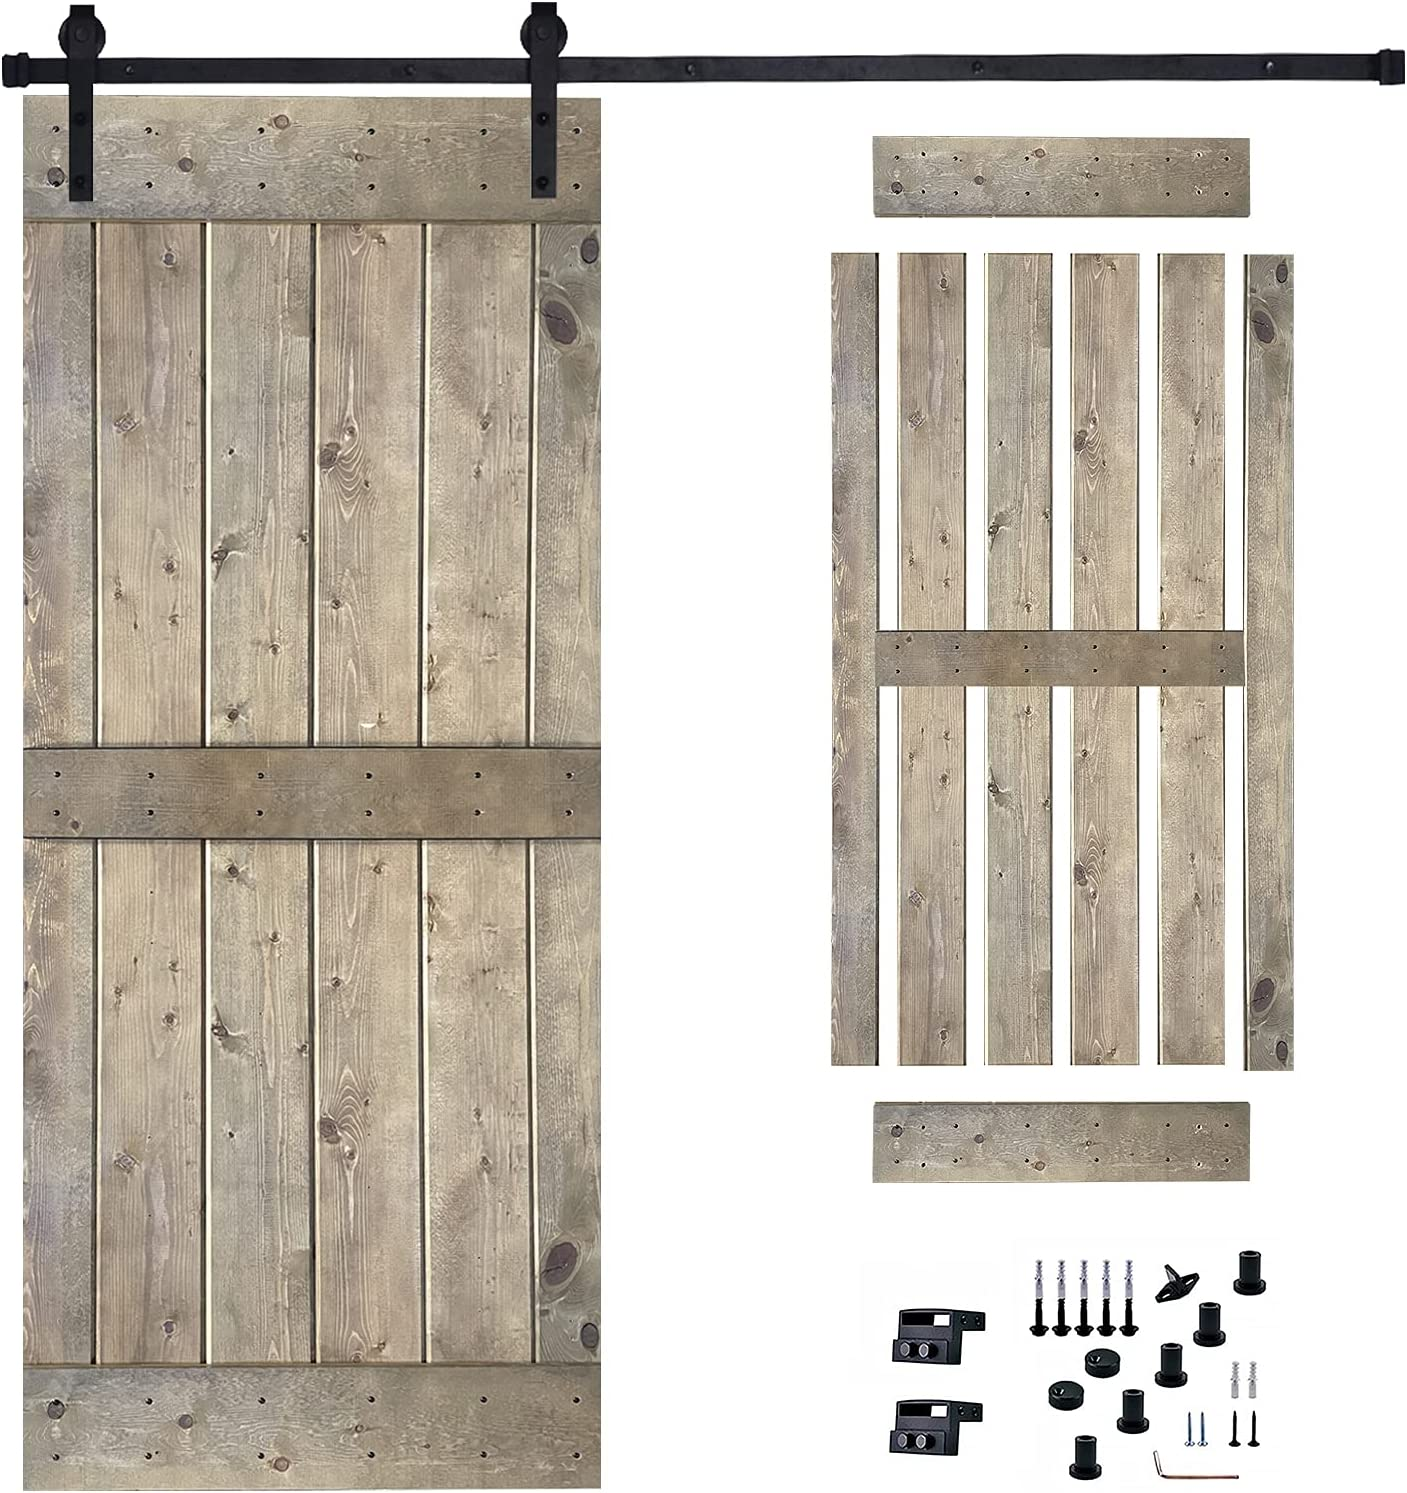 36in x 84in Sliding Barn Wood Inclu 6.3Ft Door Hardware Max New Free Shipping 78% OFF Kit with